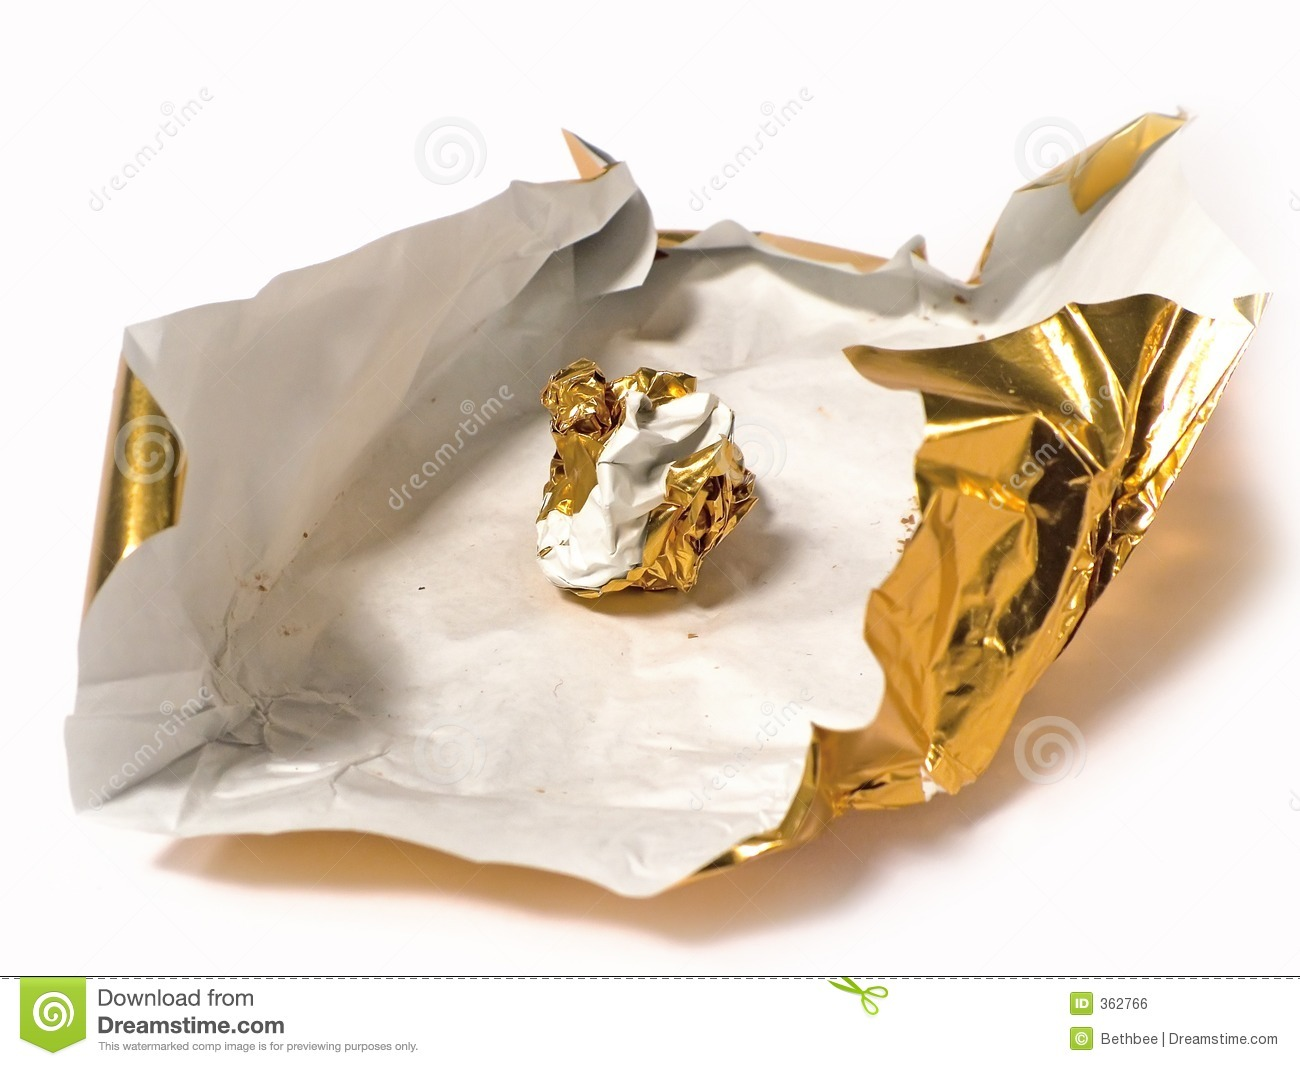 Chocolate Wrapper Royalty Free Stock Image - Image: 37859196